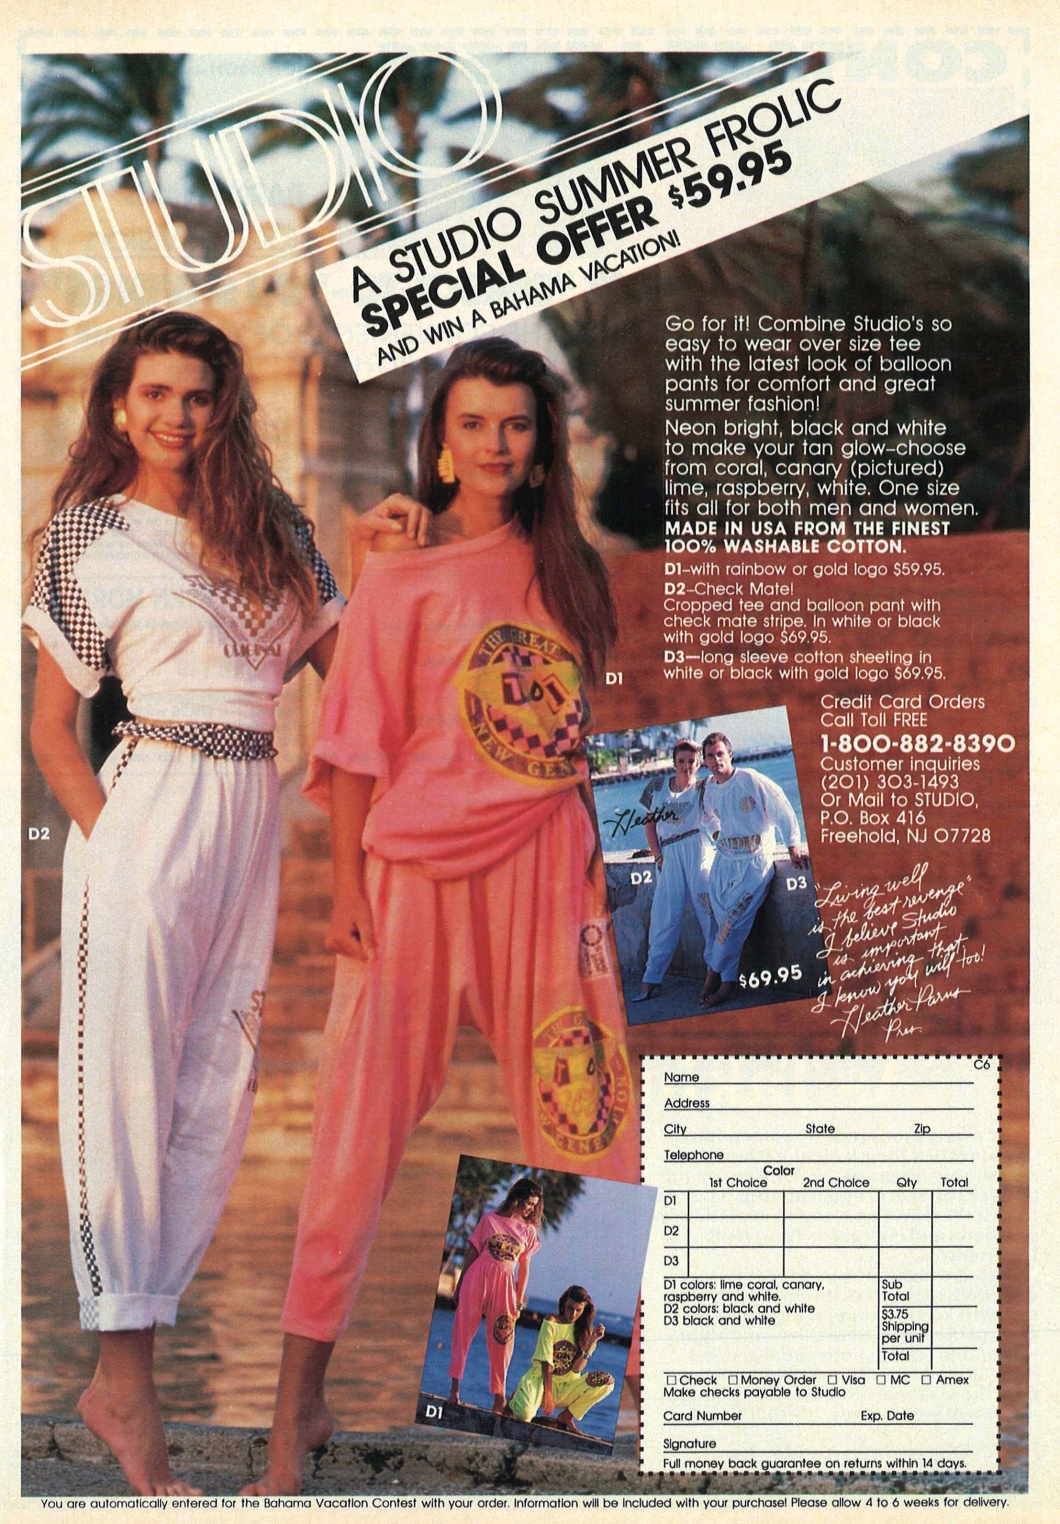 cosmo june 1990 Clothing advertisement